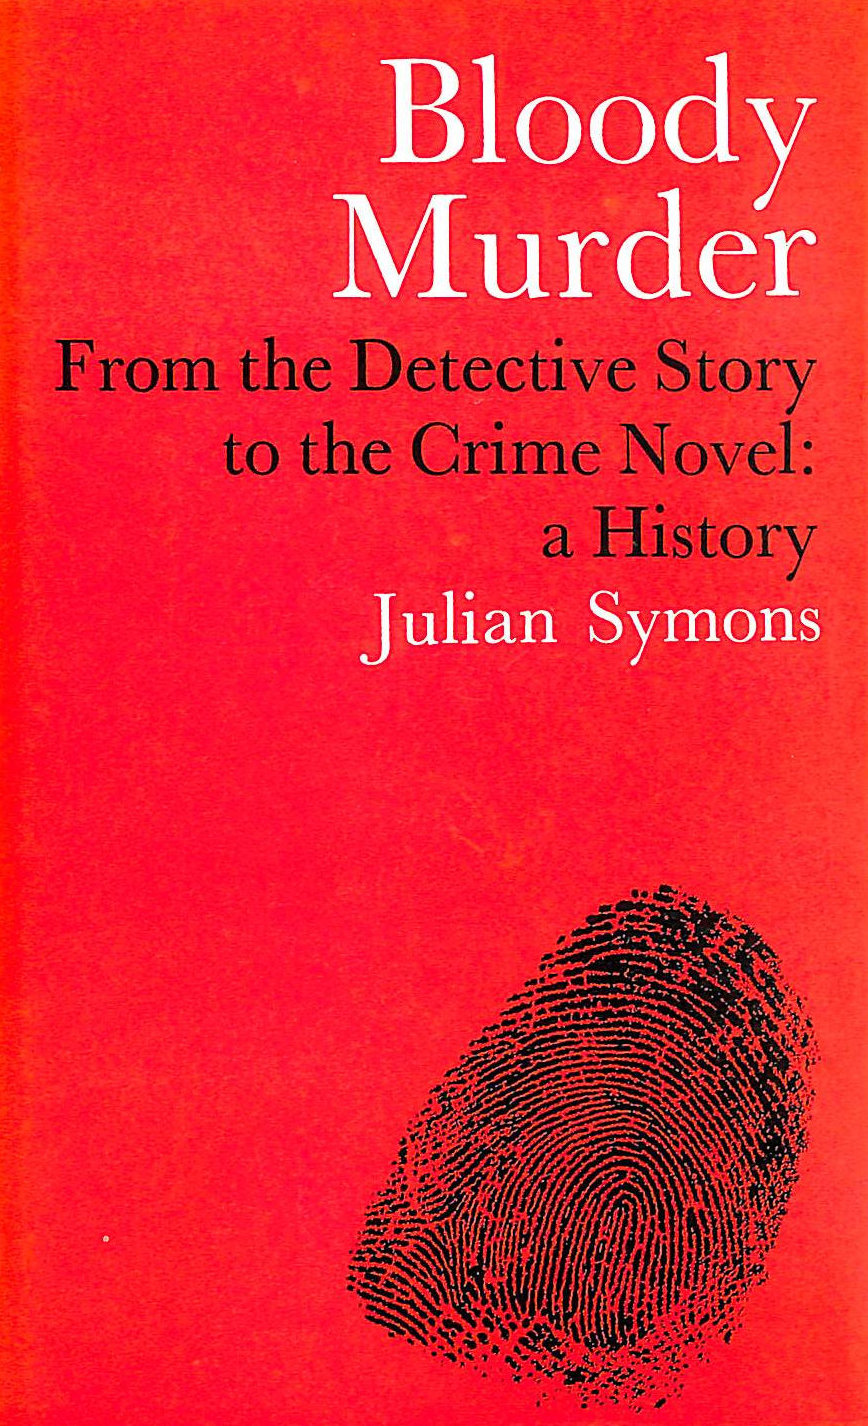 Image for Bloody Murder: From the Detective Story to the Crime Novel - A History